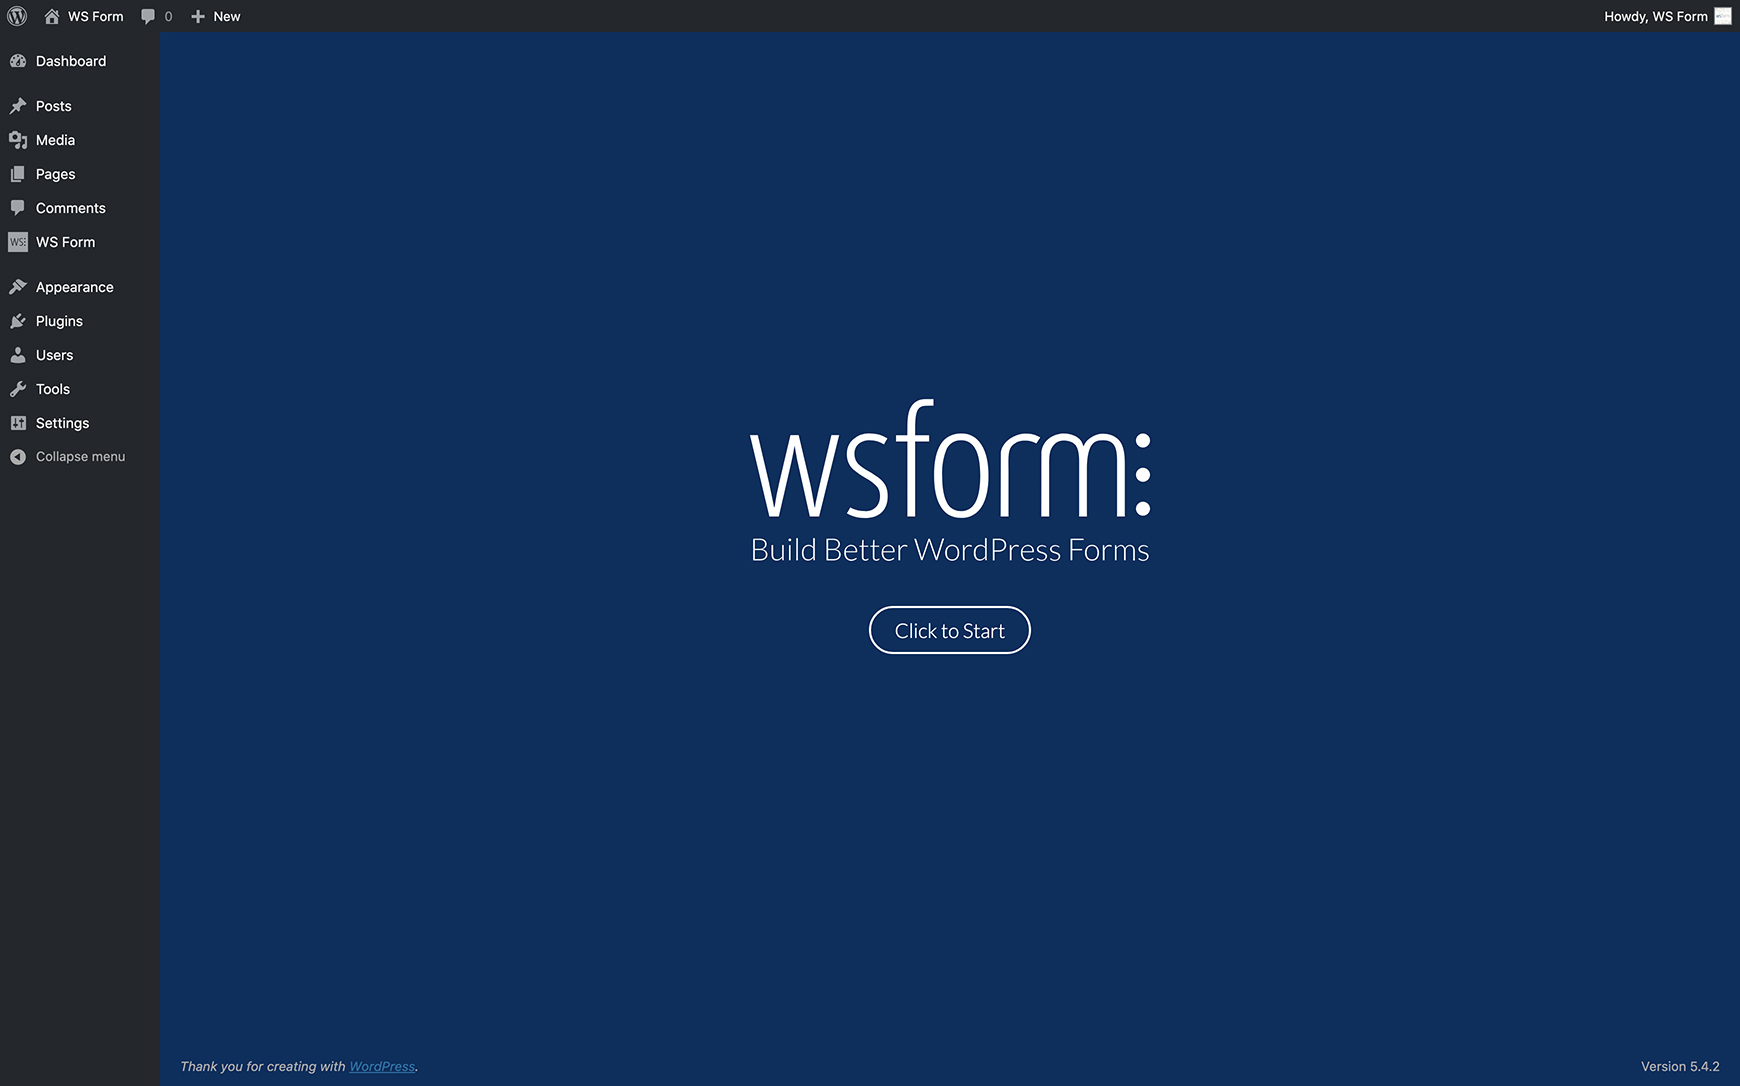 WS Form PRO - Welcome Screen